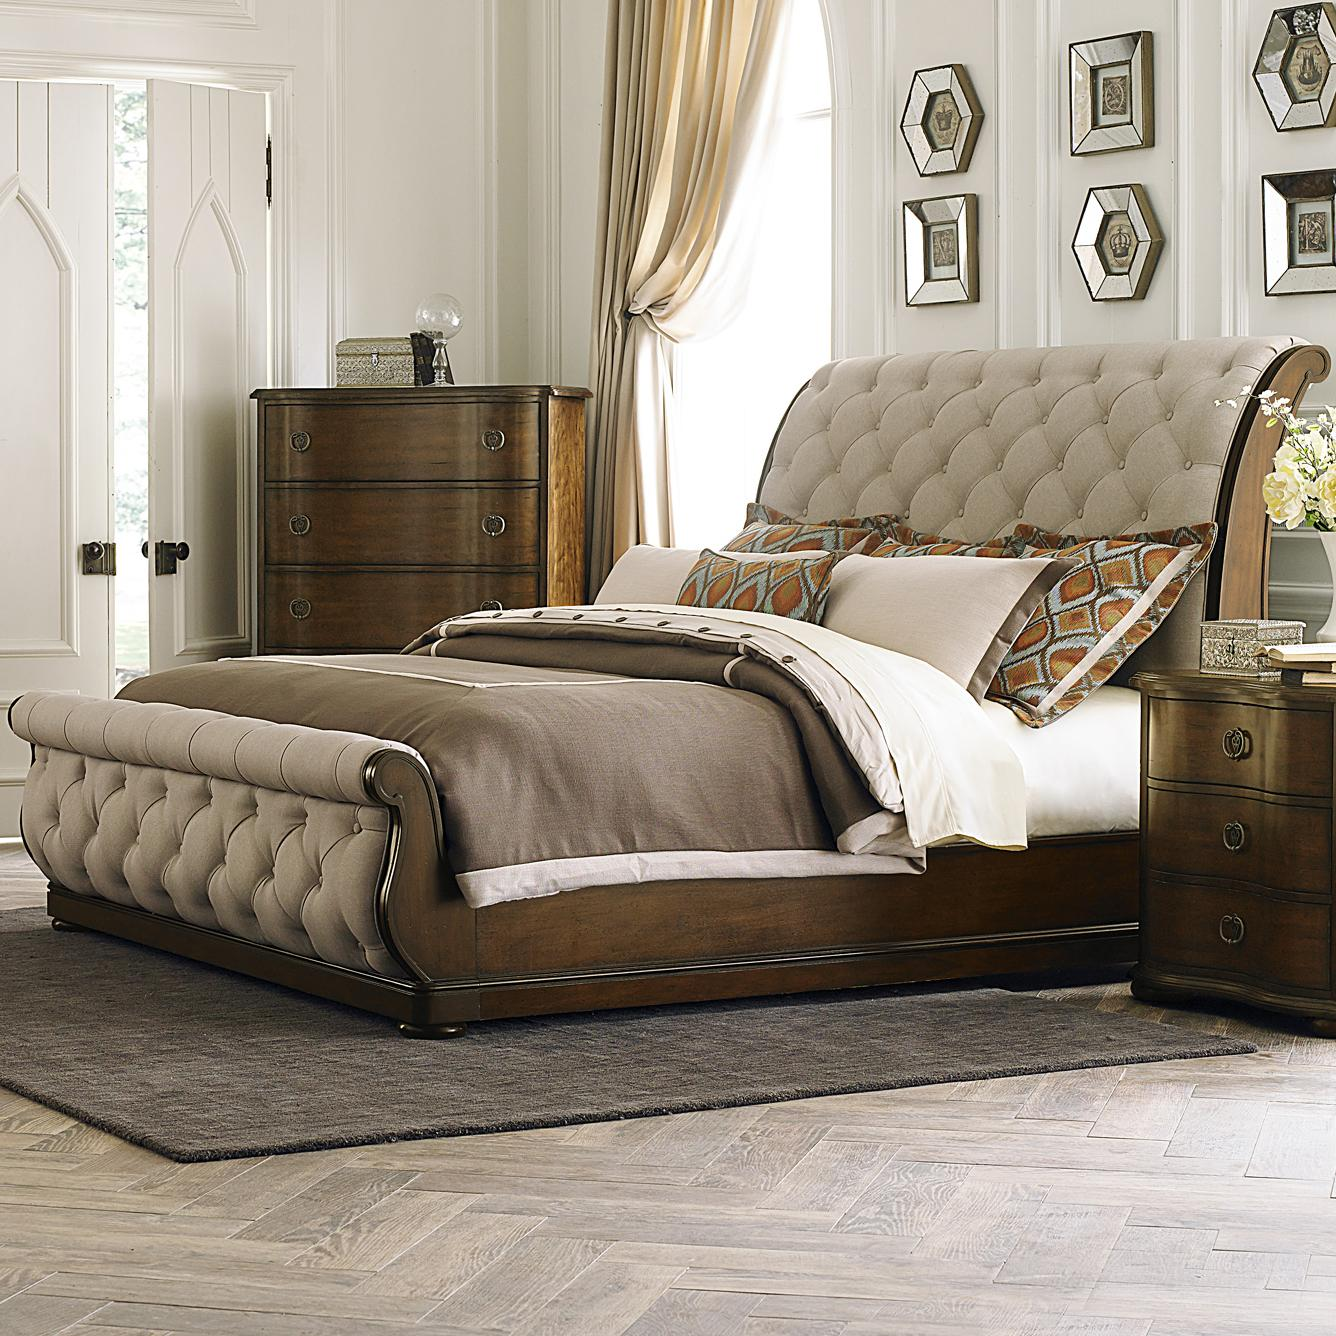 Liberty furniture cotswold transitional upholstered king for King sleigh bed bedroom sets